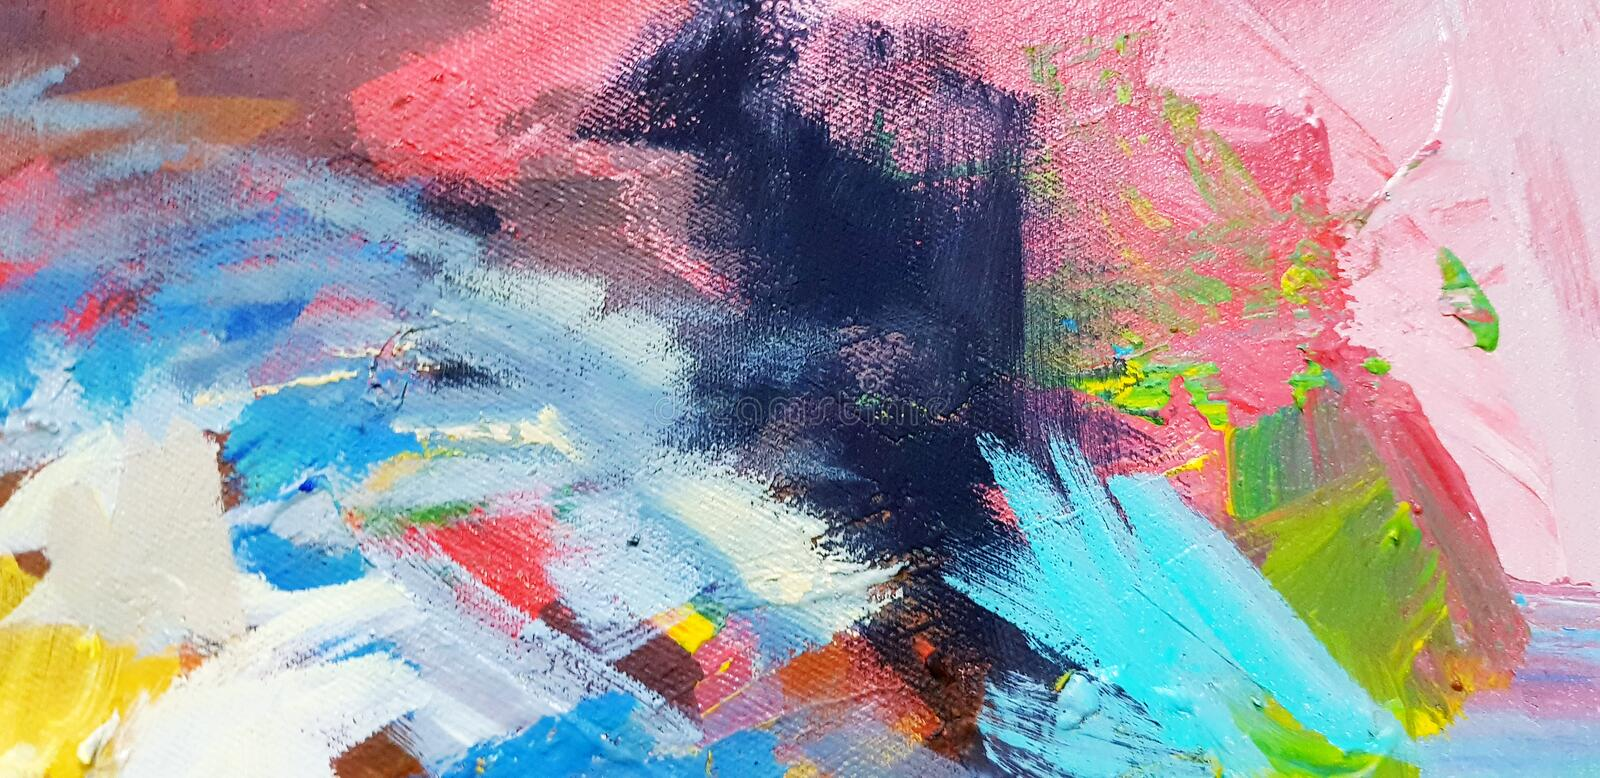 Colorful abstract background painted on canvas frame in acrylic color style. stock photo